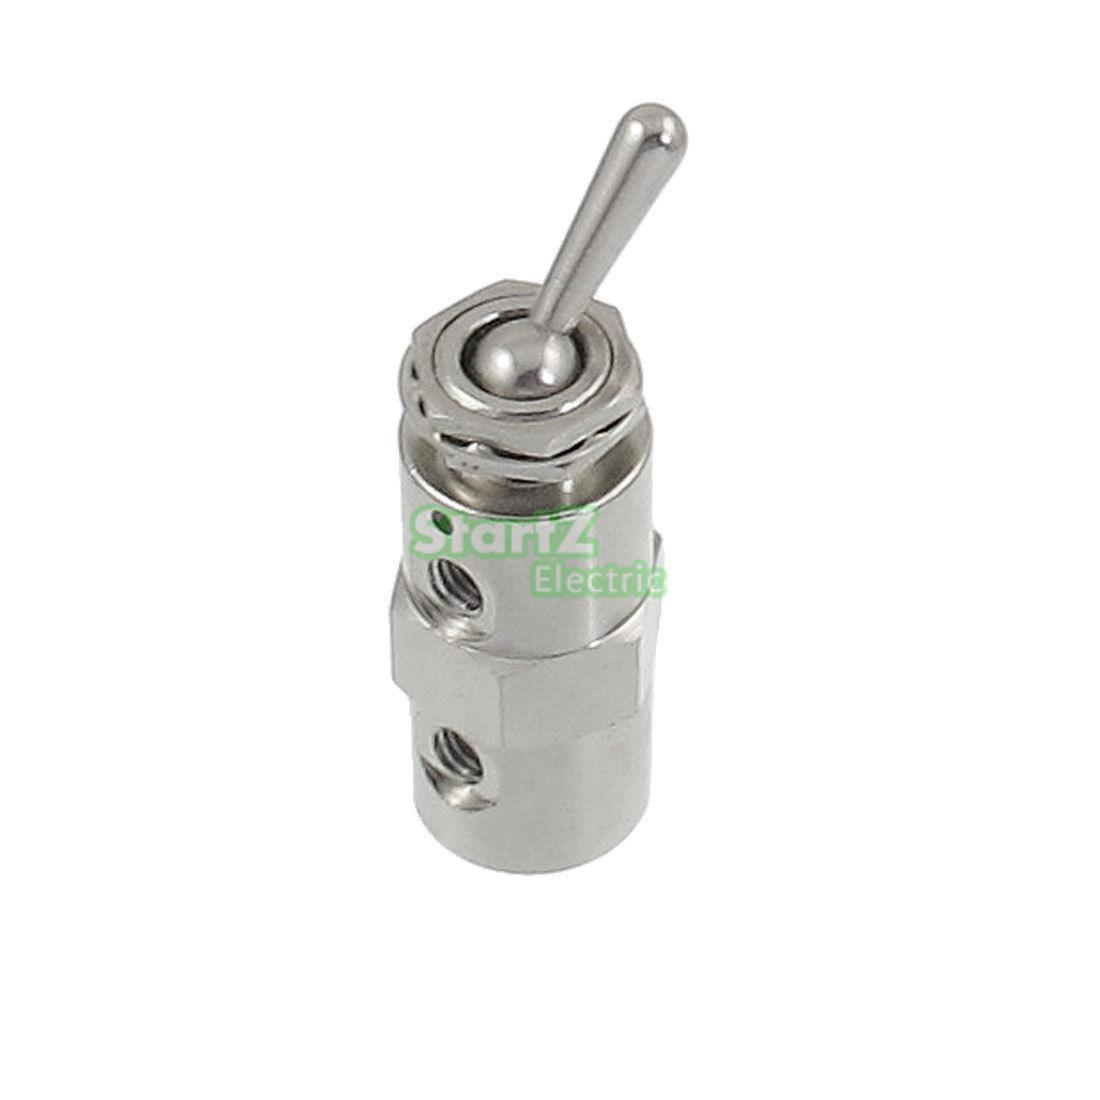 2 Position 5 Way Cylindrical Mechanical Air Pneumatic Valve TAC2-4V air pneumatic 2 position 3 way roller lever mechanical valve tac2 31p pneumatic switch valve